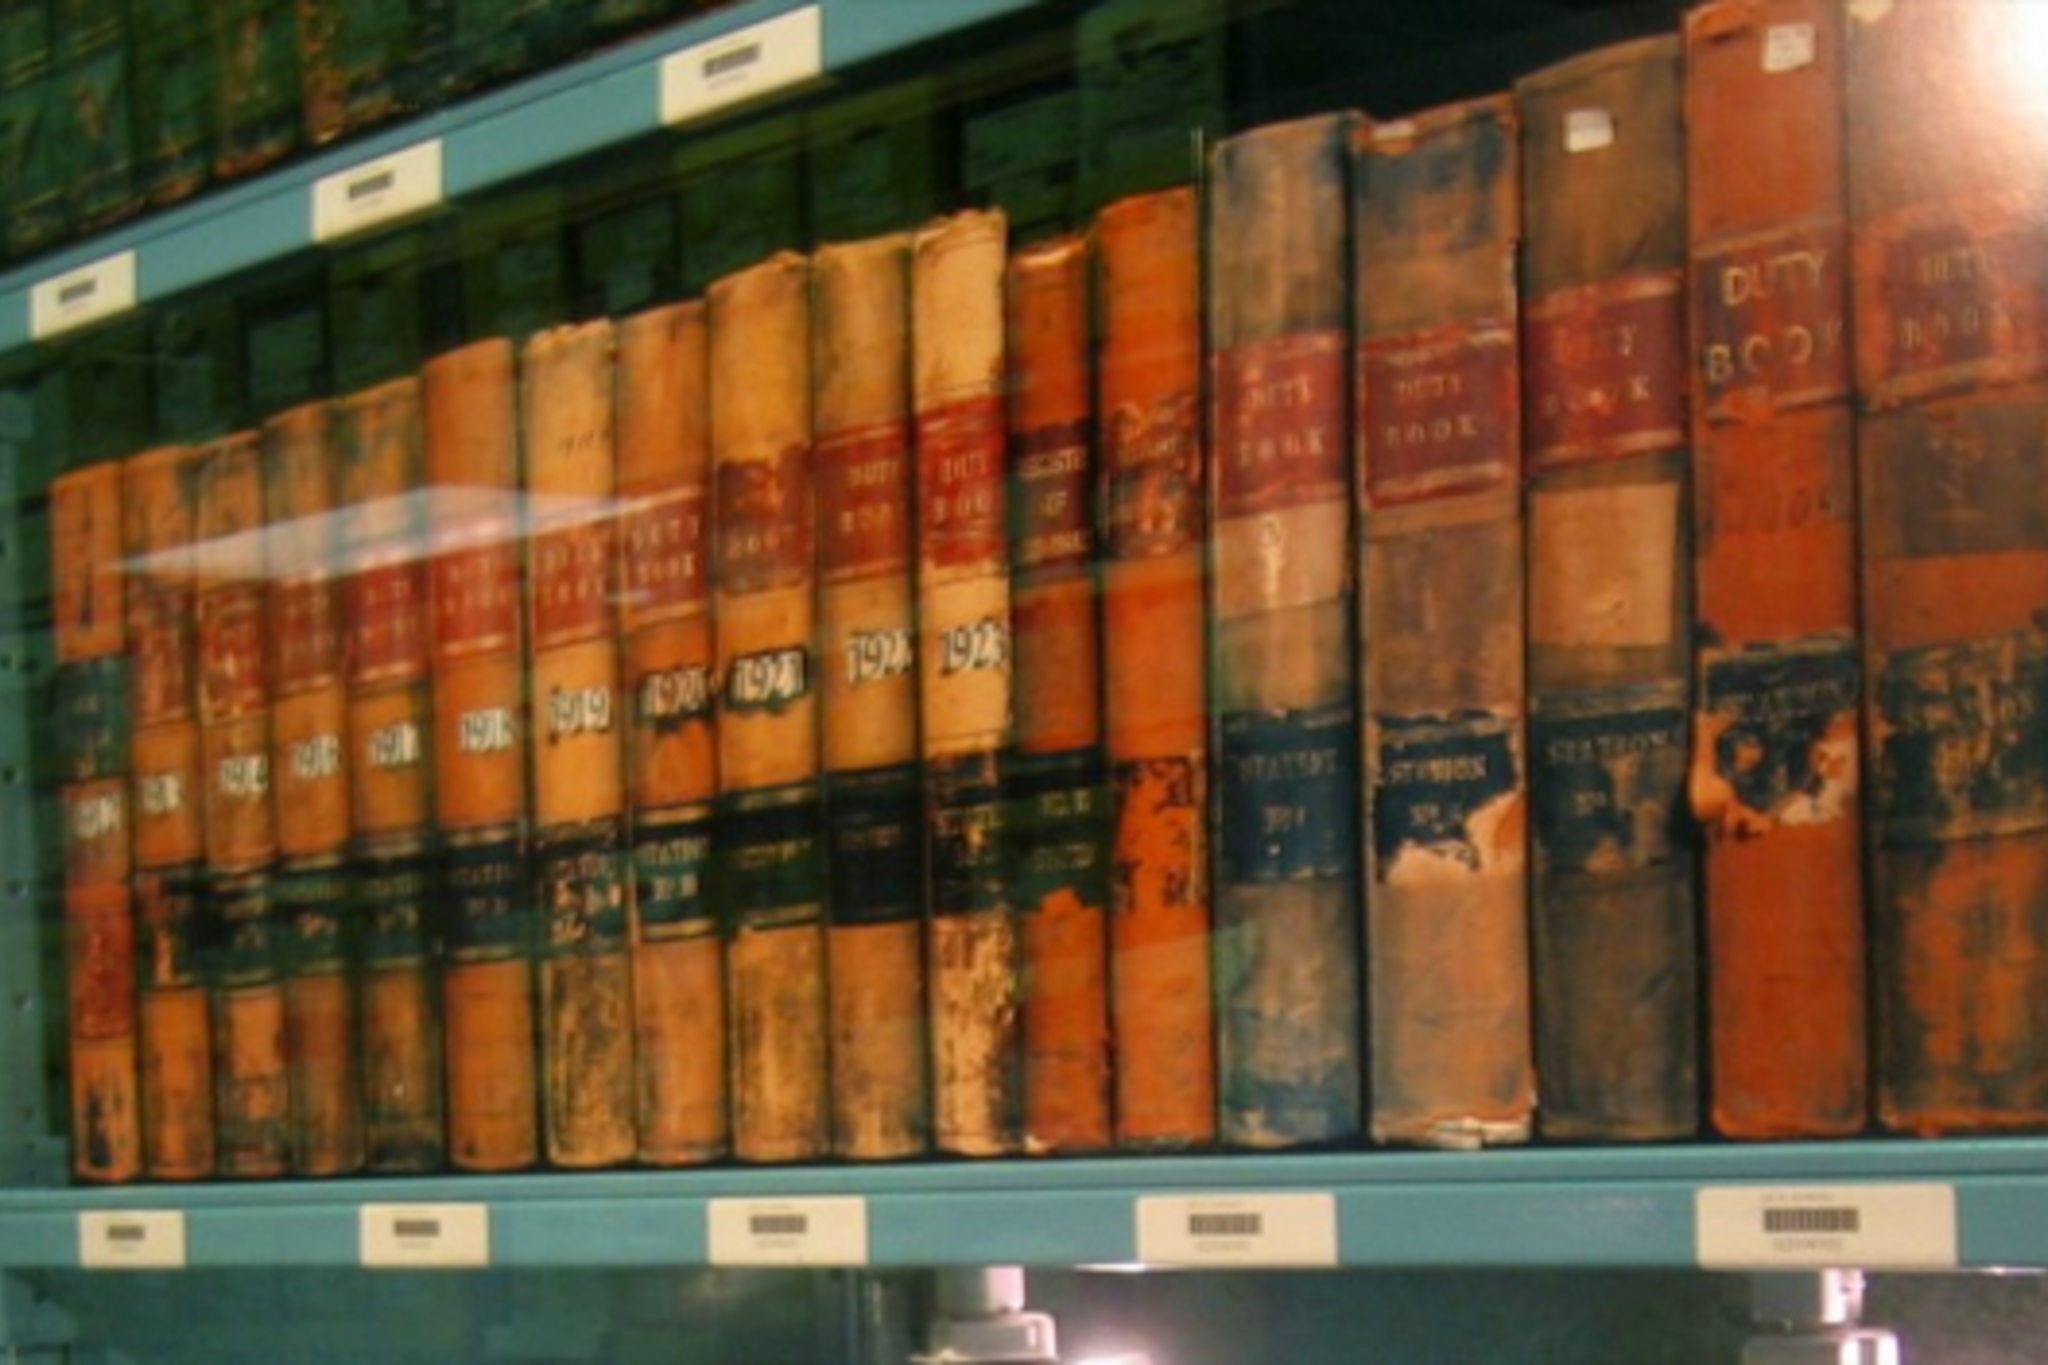 Toronto Archives: Should they go all digital?